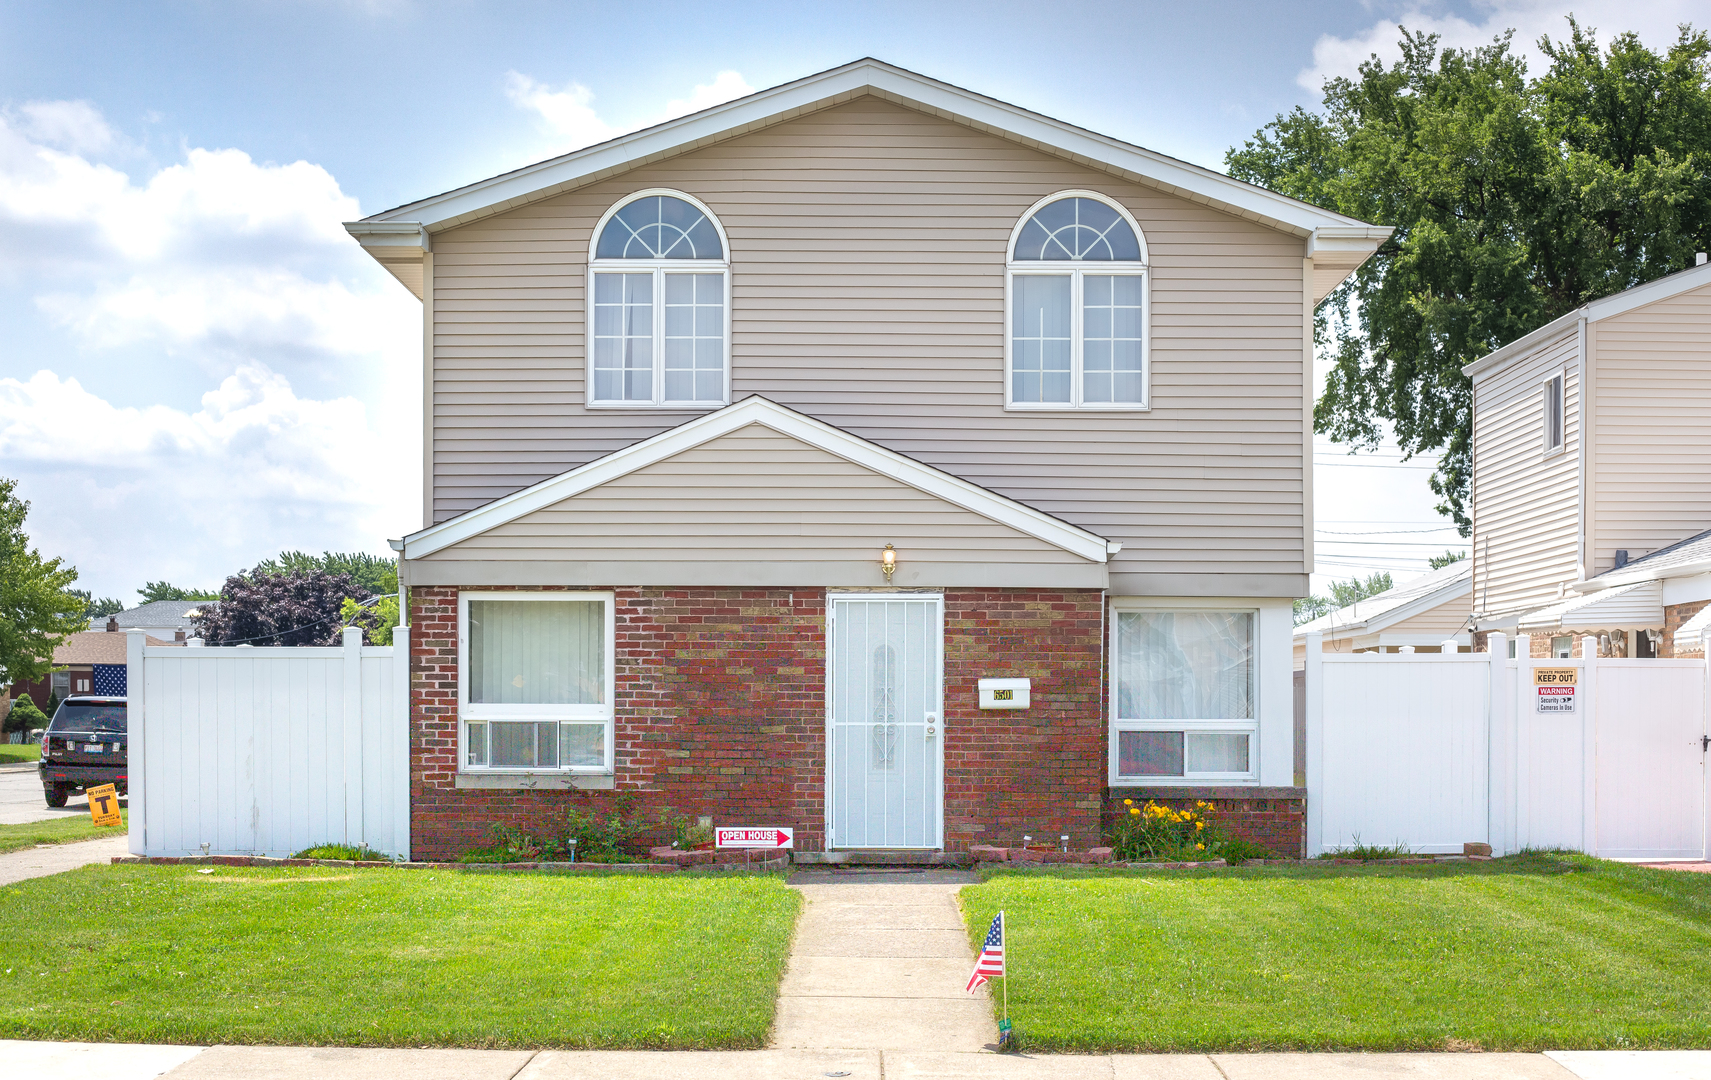 6501 WEST 60TH PLACE, CHICAGO, IL 60638